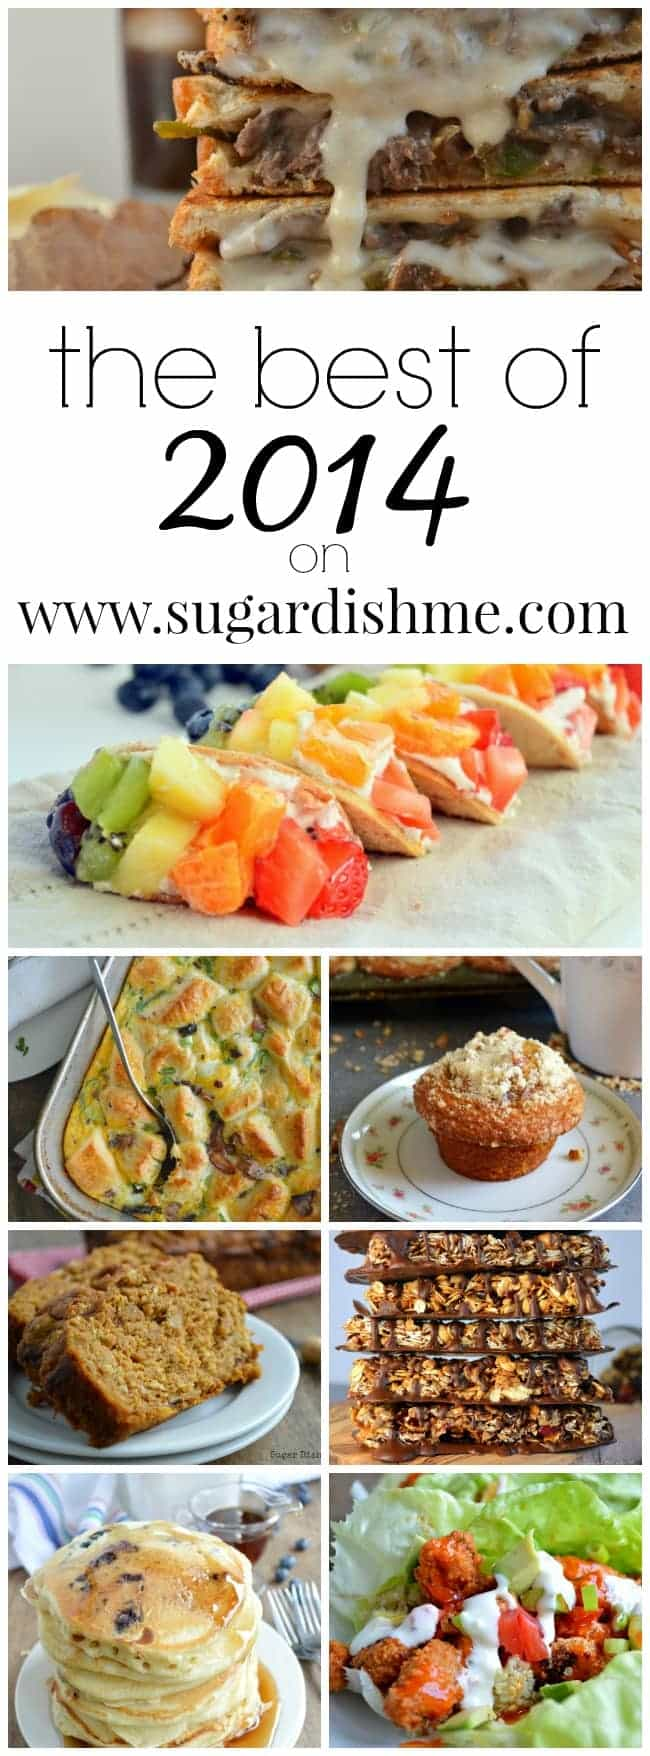 The Best of 2014 on www.sugardishme.com